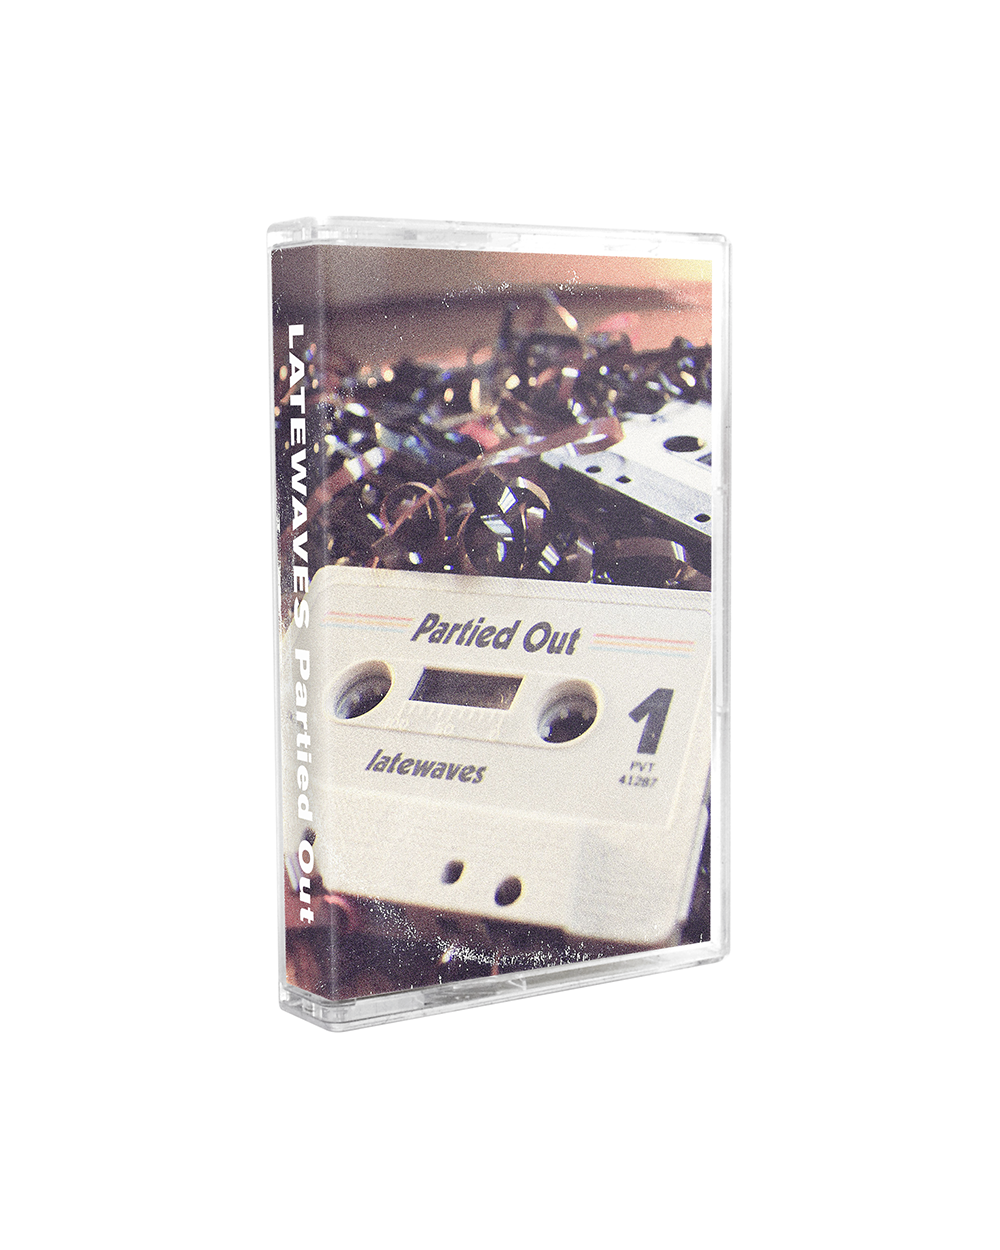 Latewaves : Partied Out (Cassette)